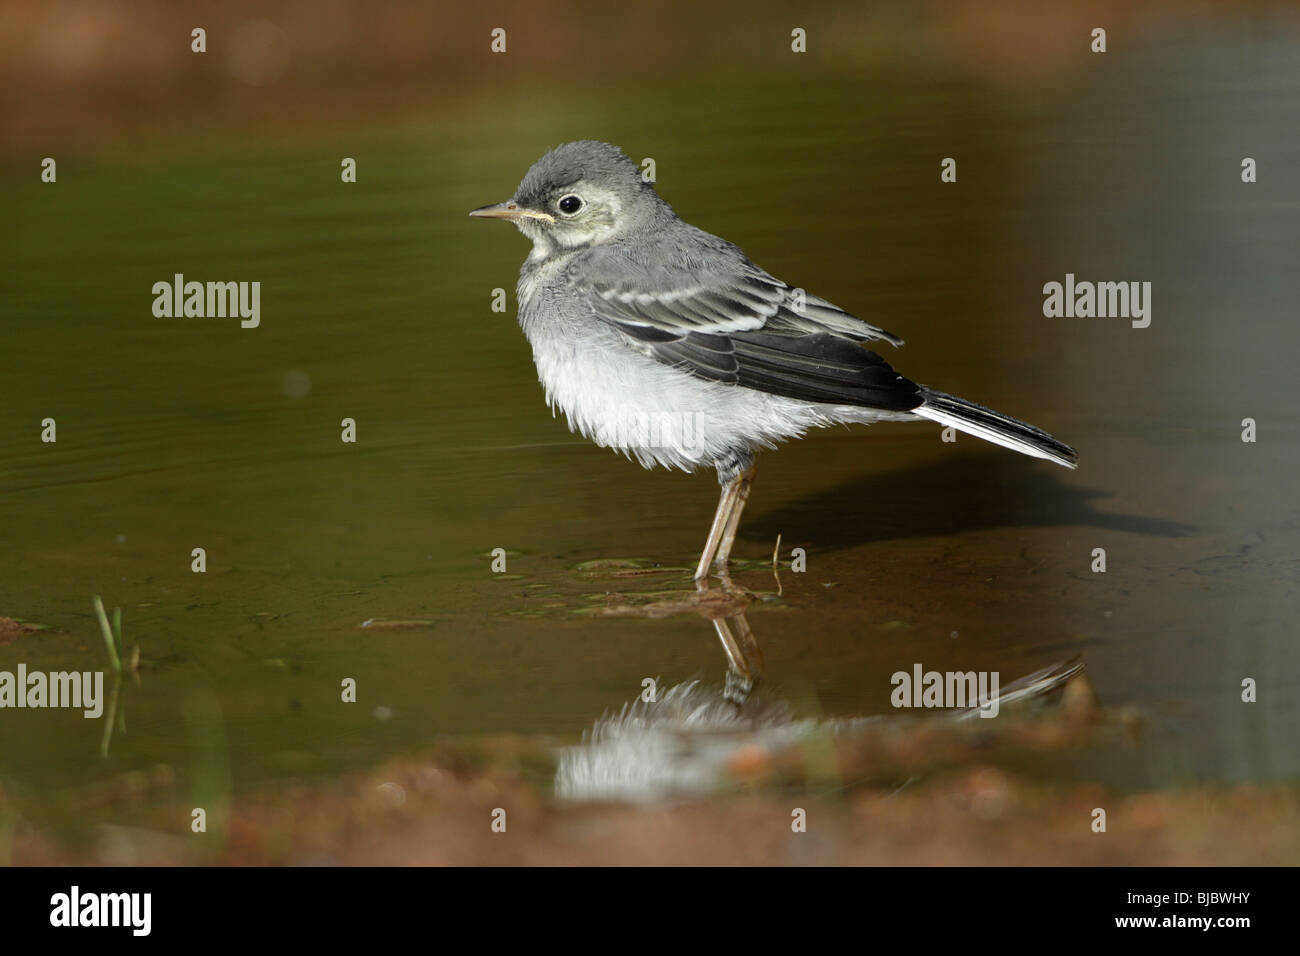 Pied Wagtail (Motacilla alba), fledgling bathing in puddle - Stock Image